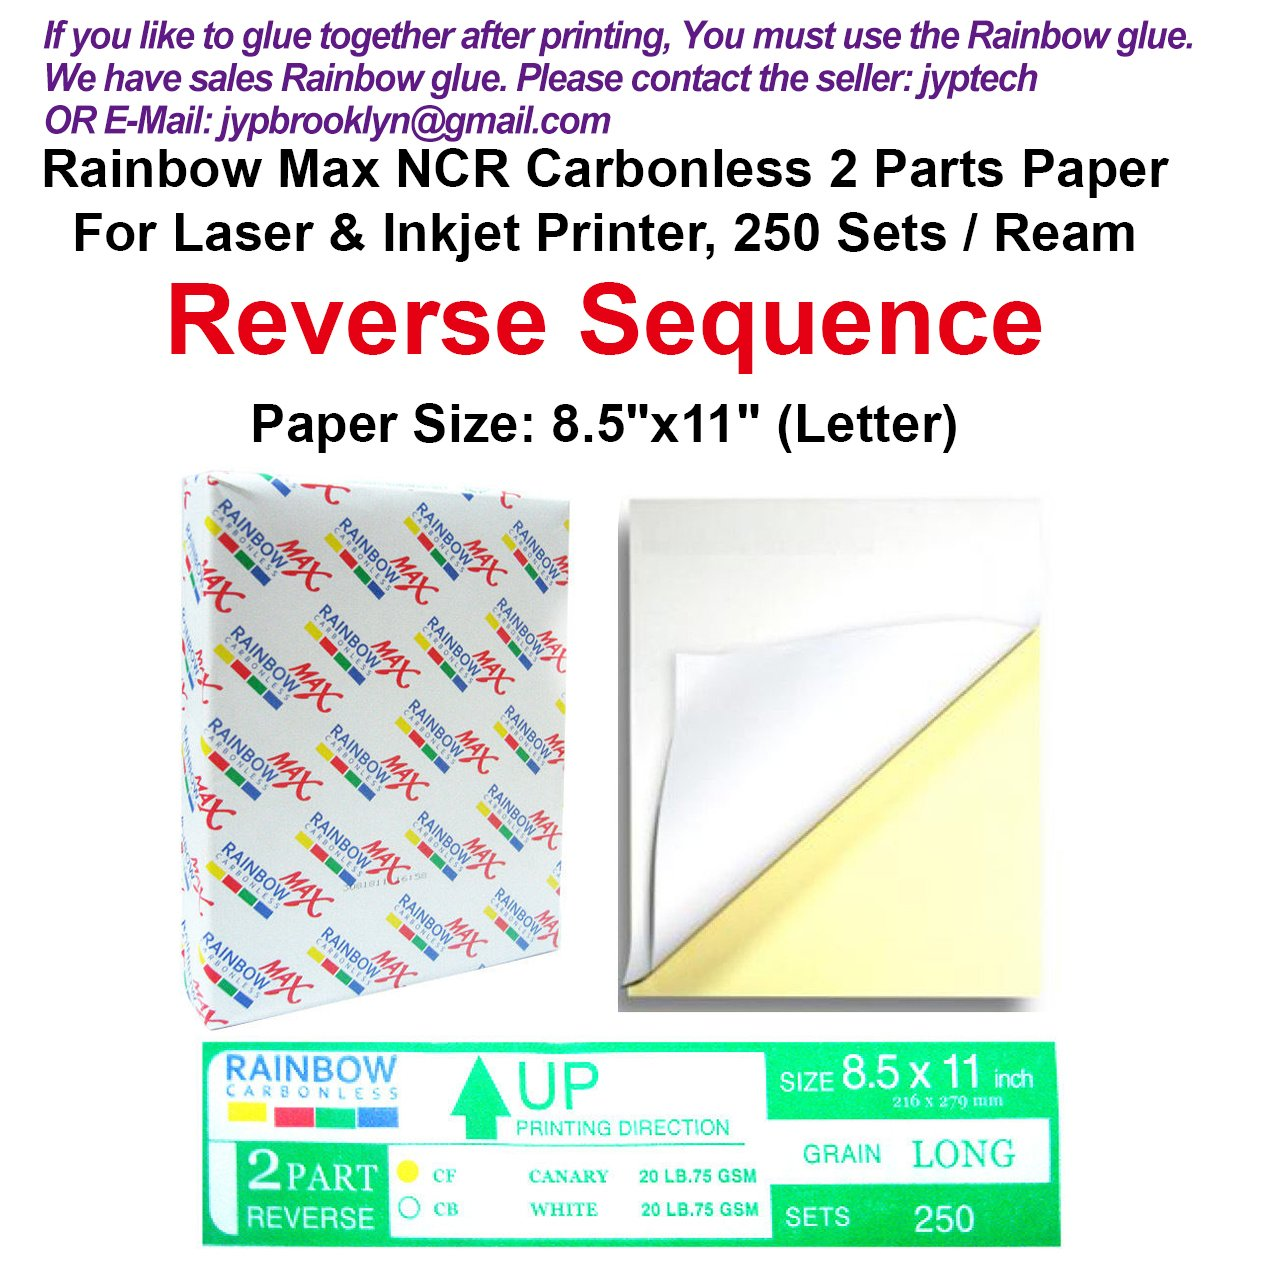 Rainbow Max NCR Carbonless Papers 2 Parts, Letter Size, White & Canary, for Laser & Inkjet Printer (250 Sets)